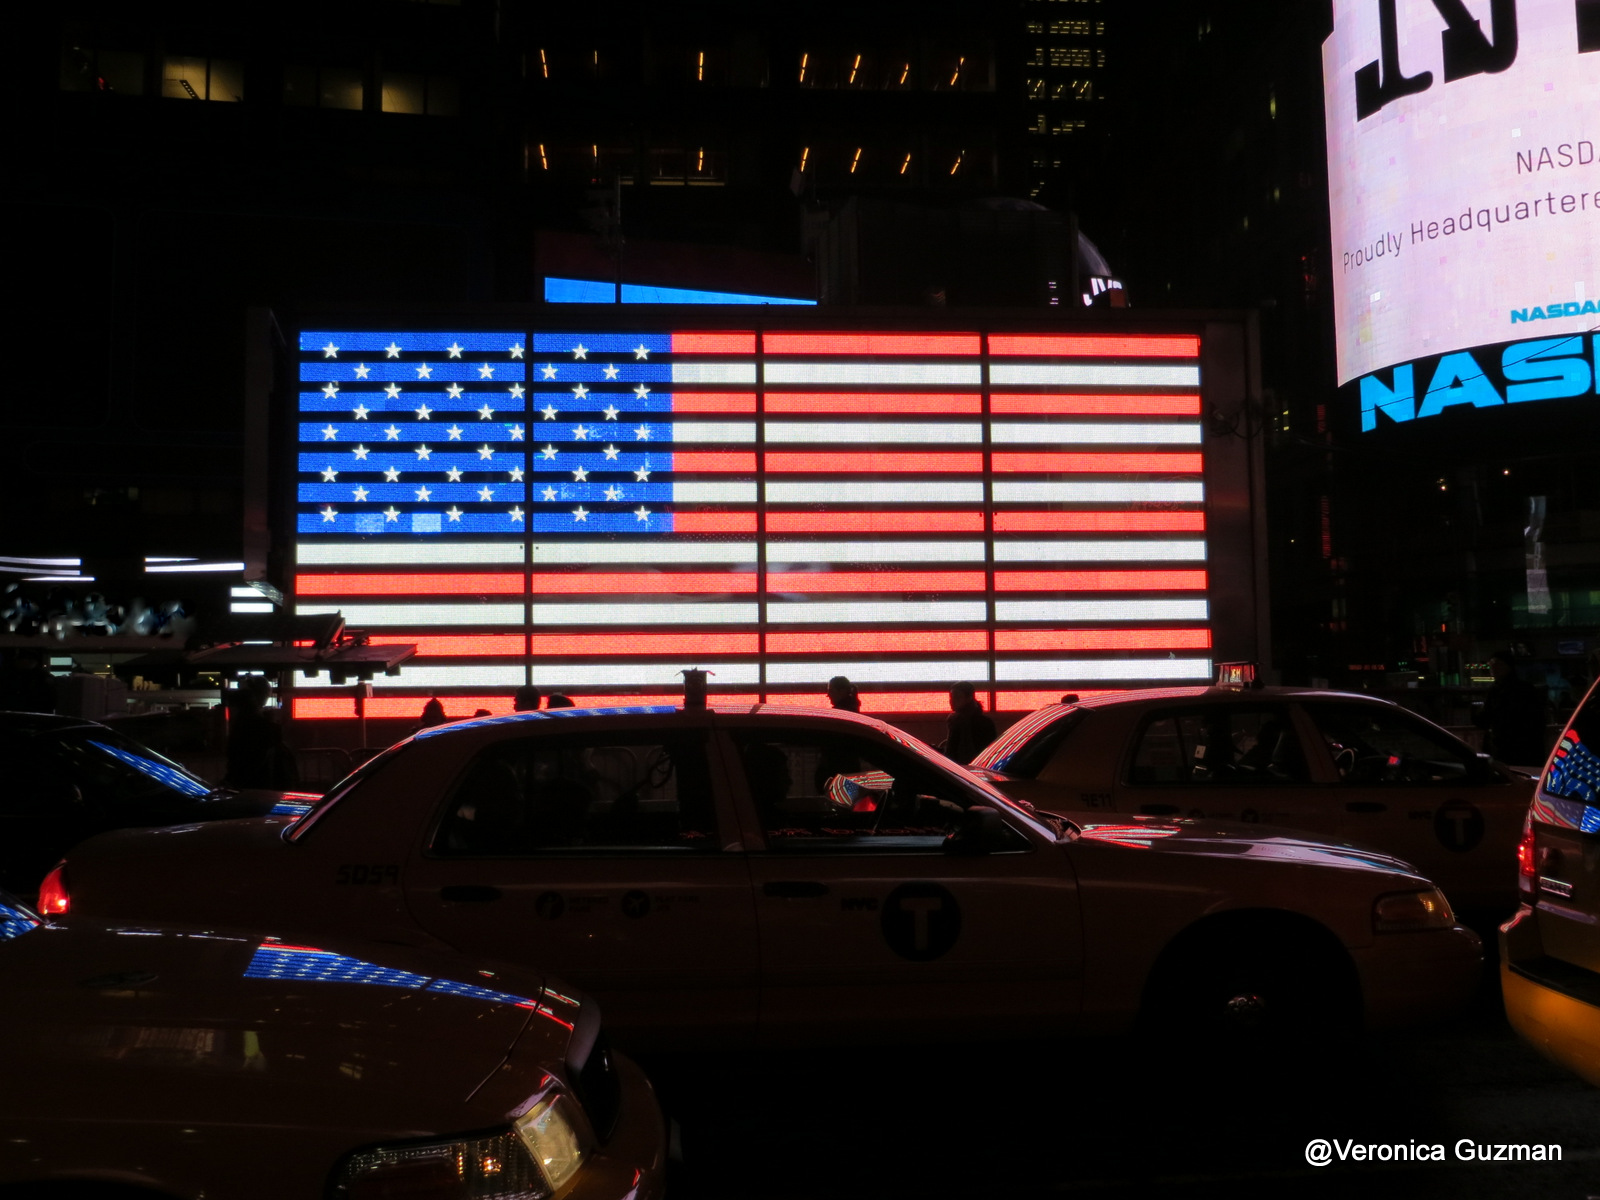 NYC_Nasdaq_USA_lights_IMG_0204.JPG